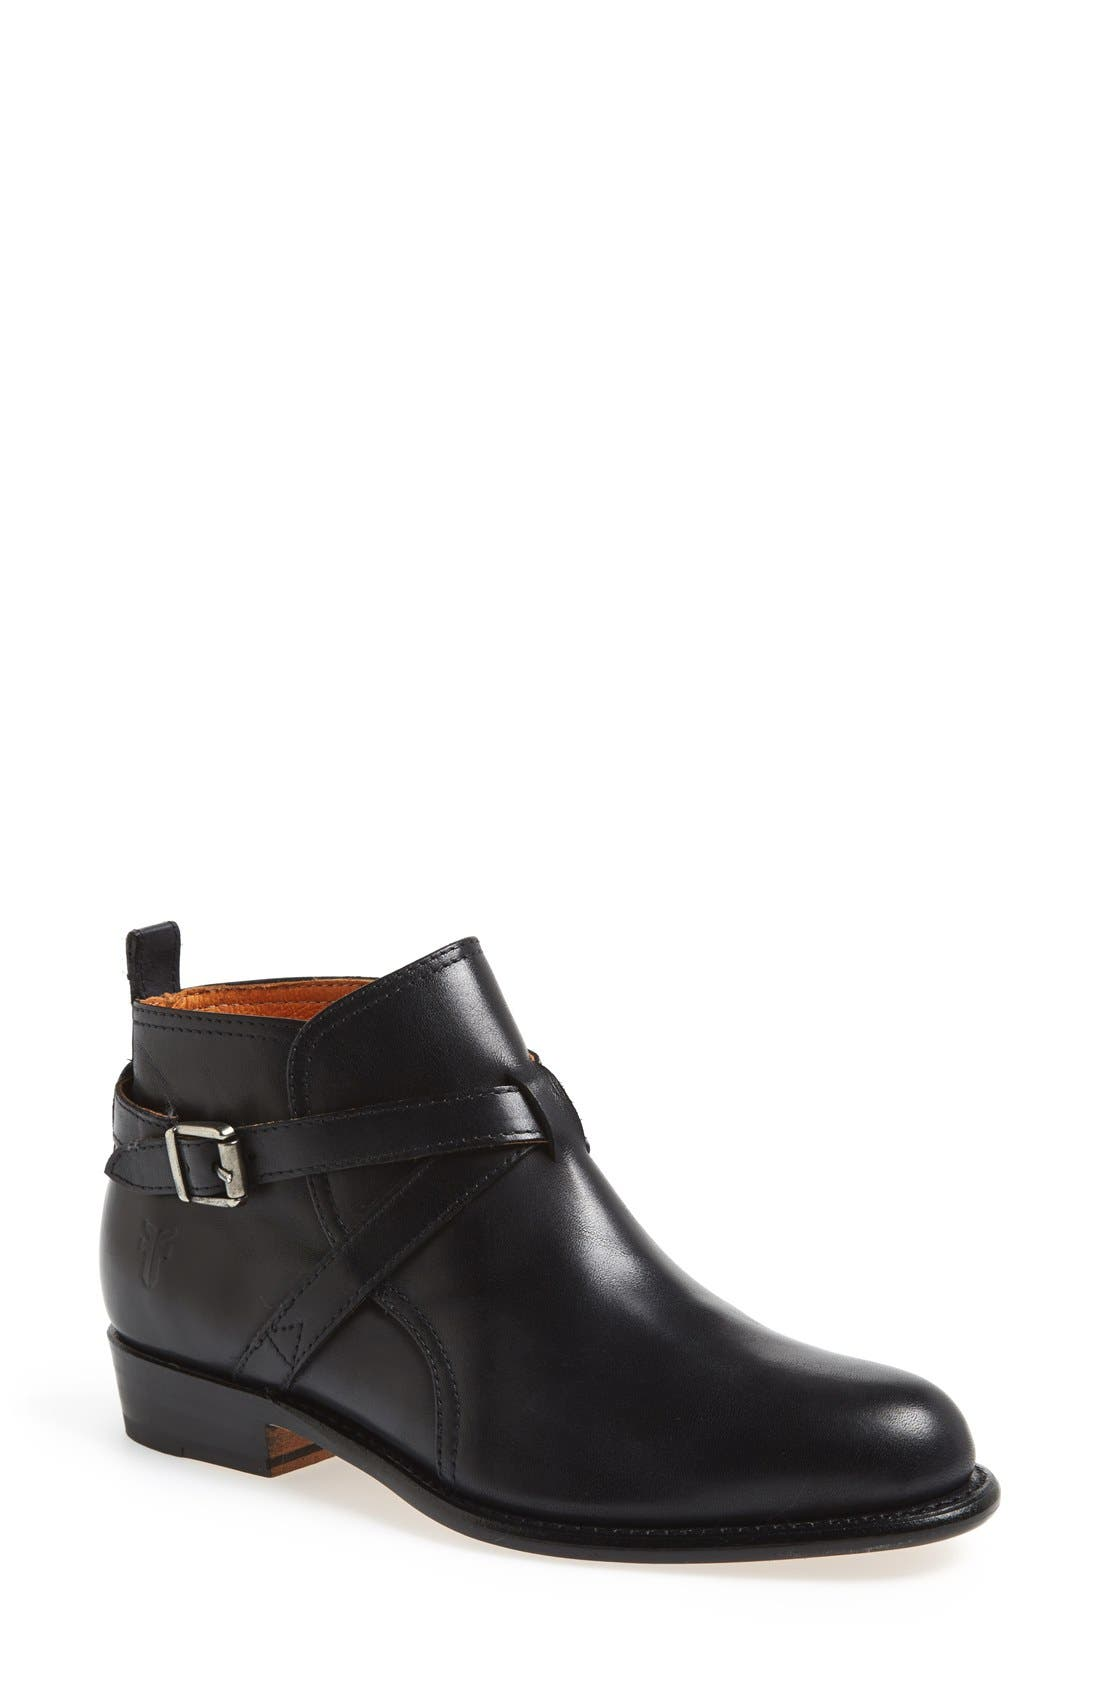 Alternate Image 1 Selected - Frye 'Dorado' Leather Ankle Boot (Women)